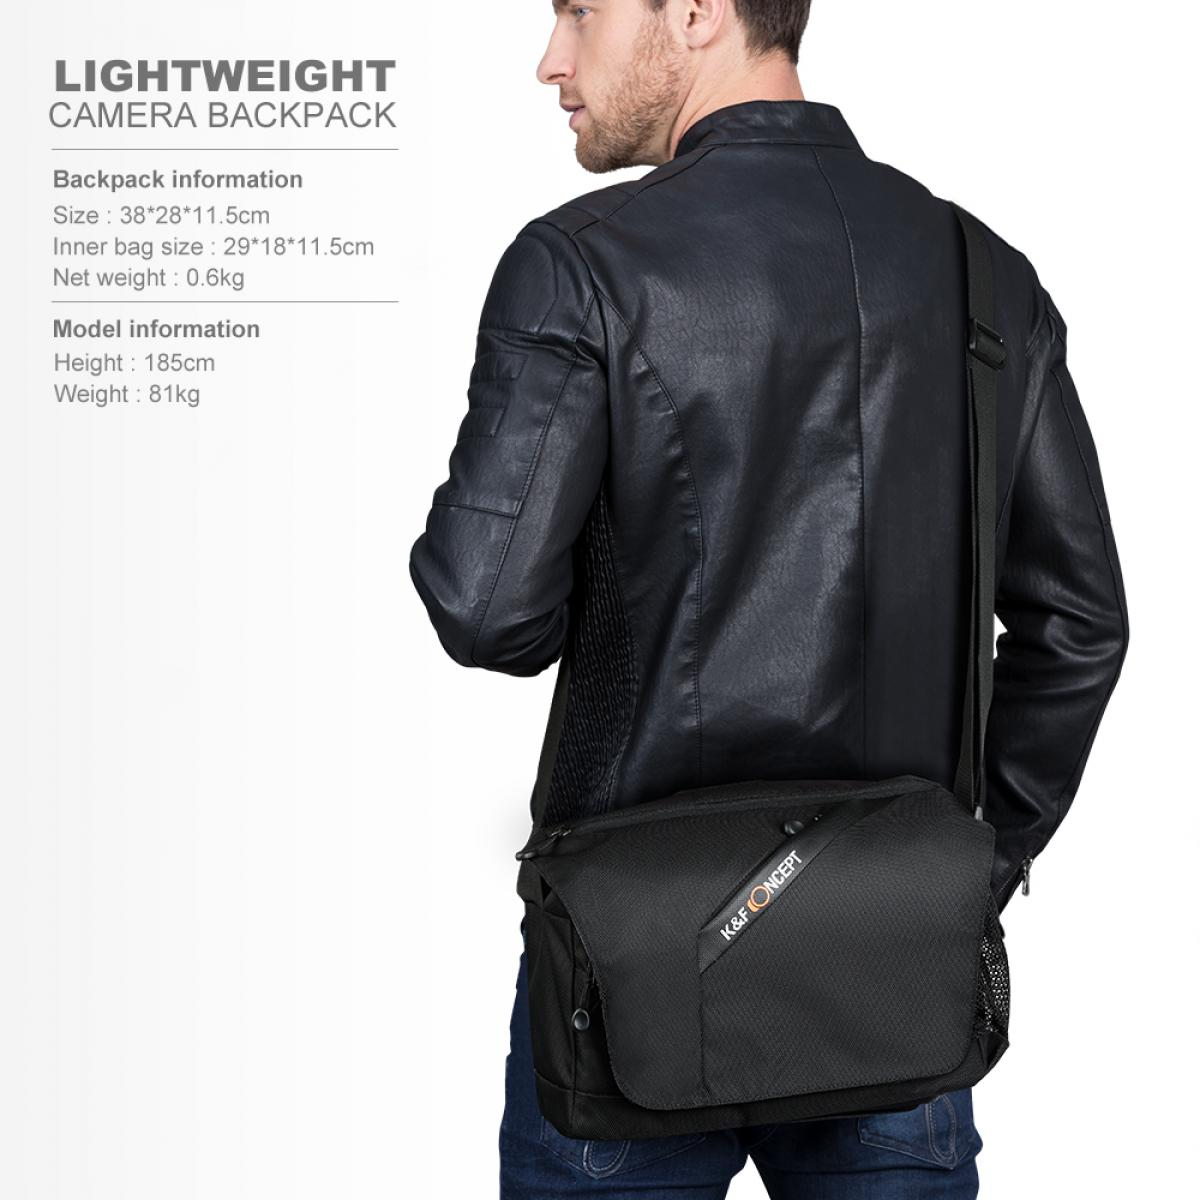 K&F Concept 13.091 Compact Messenger Shoulder Bag Freeman Series